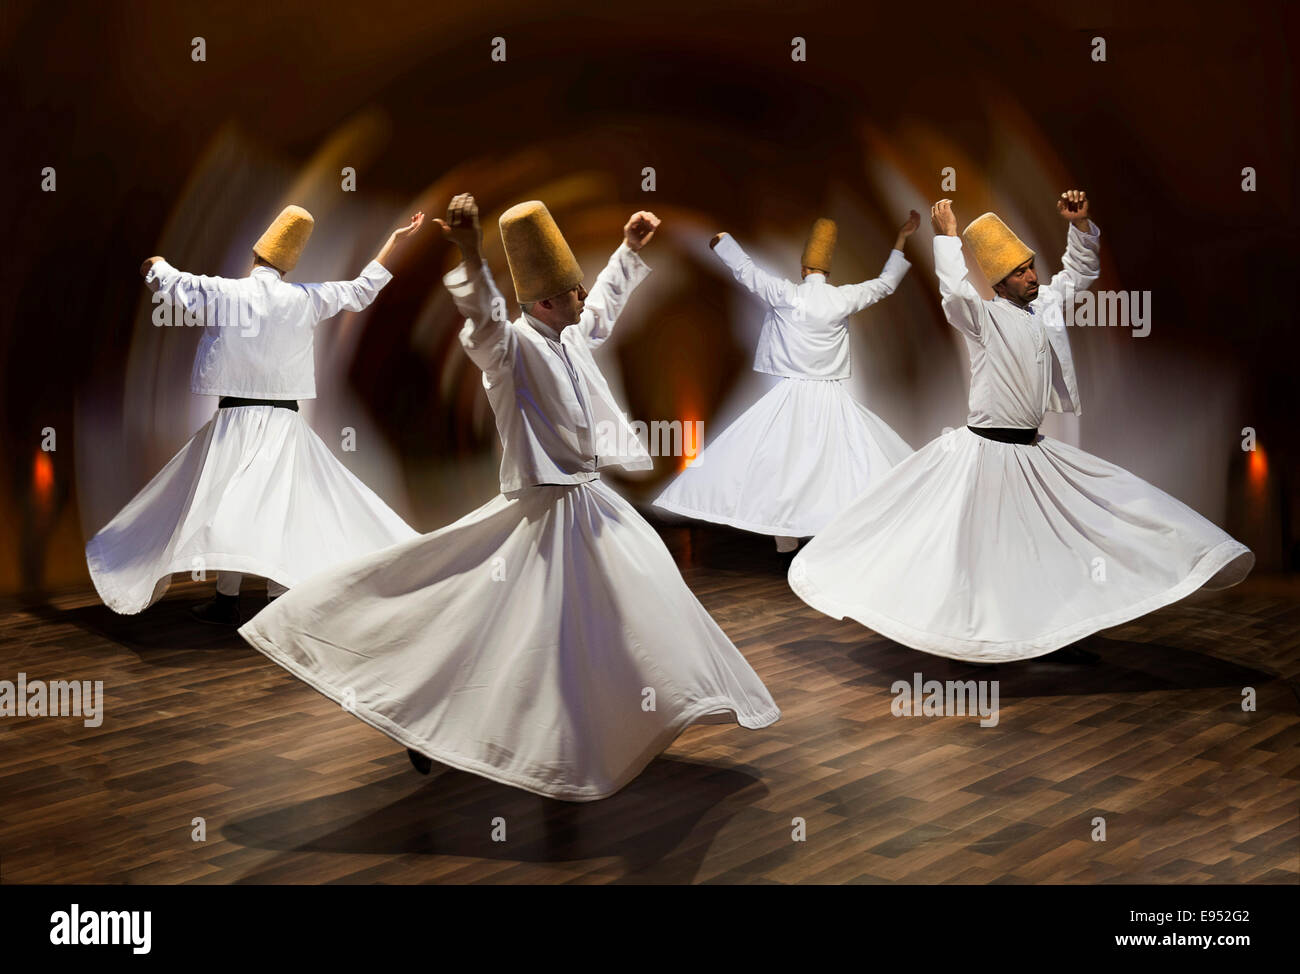 Whirling dervishes, show, Cappadocia, Turkey - Stock Image